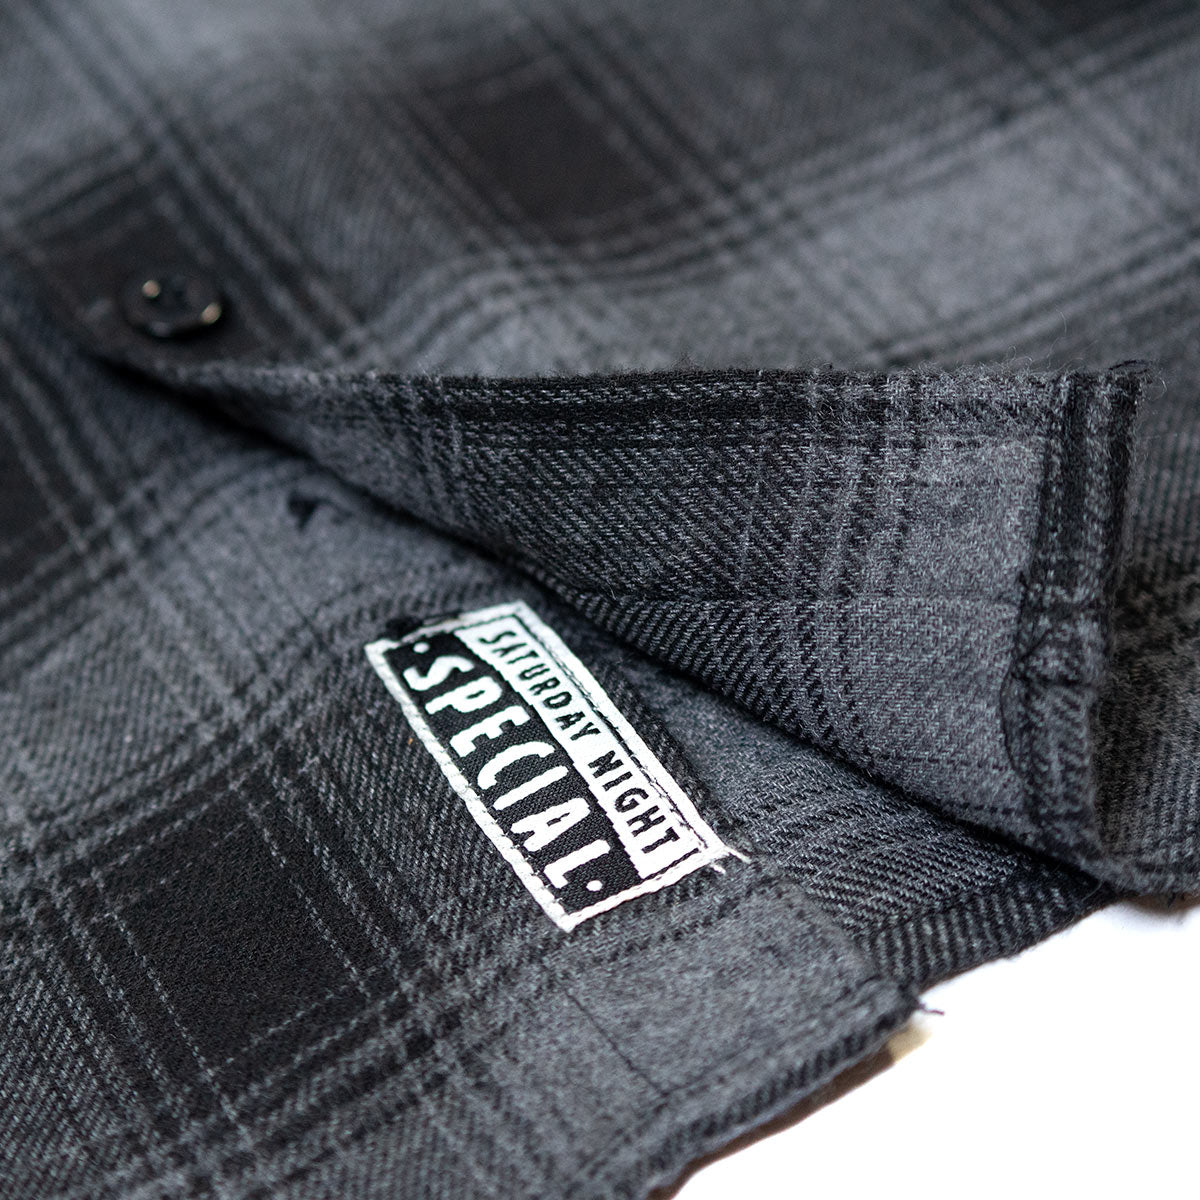 Saturday Night Special Flannel - Grey/Black